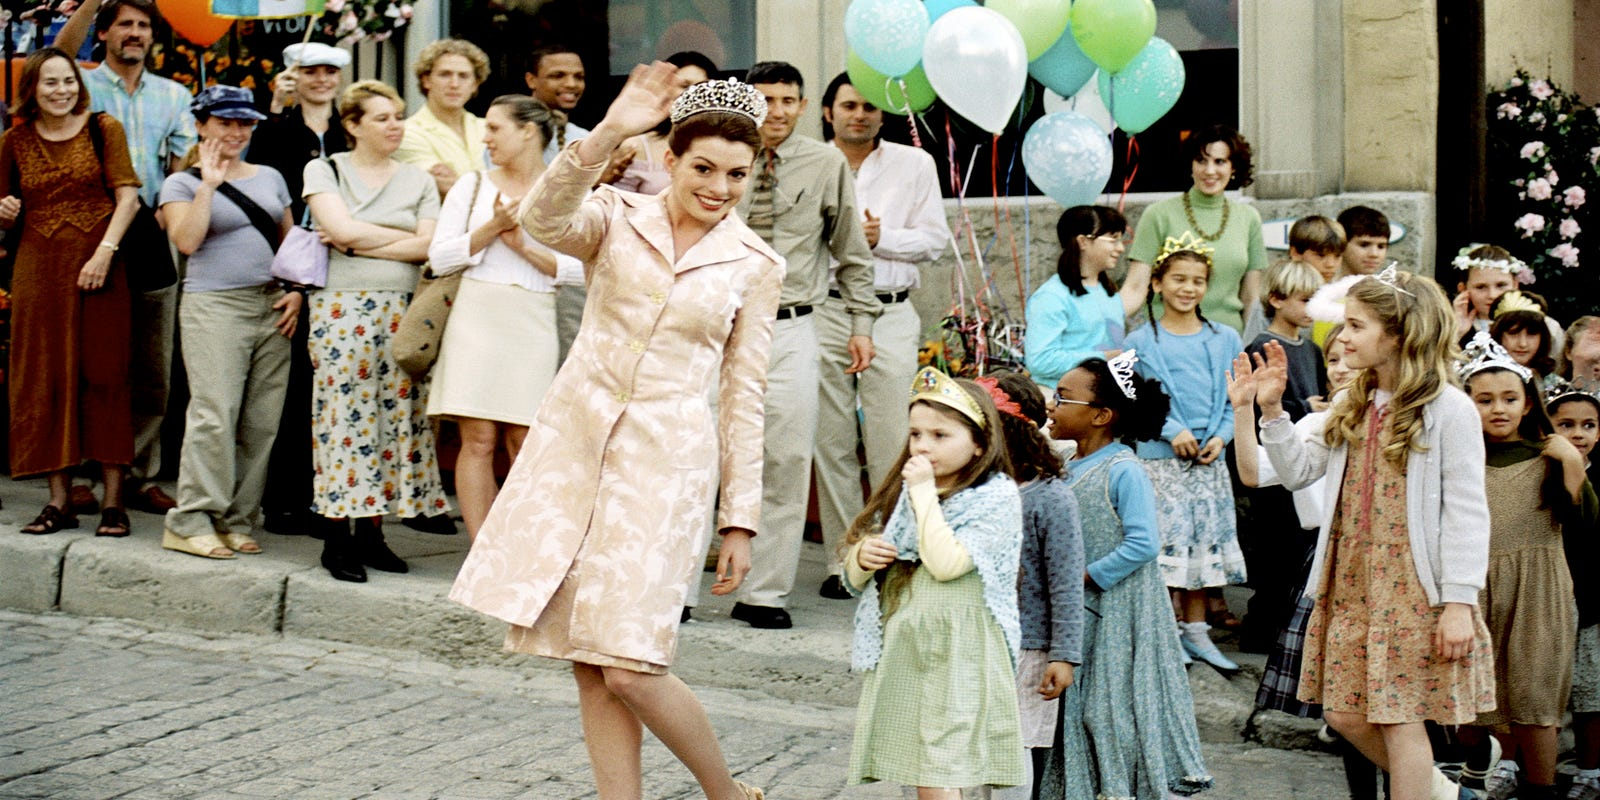 when is princess diaries 3 coming out